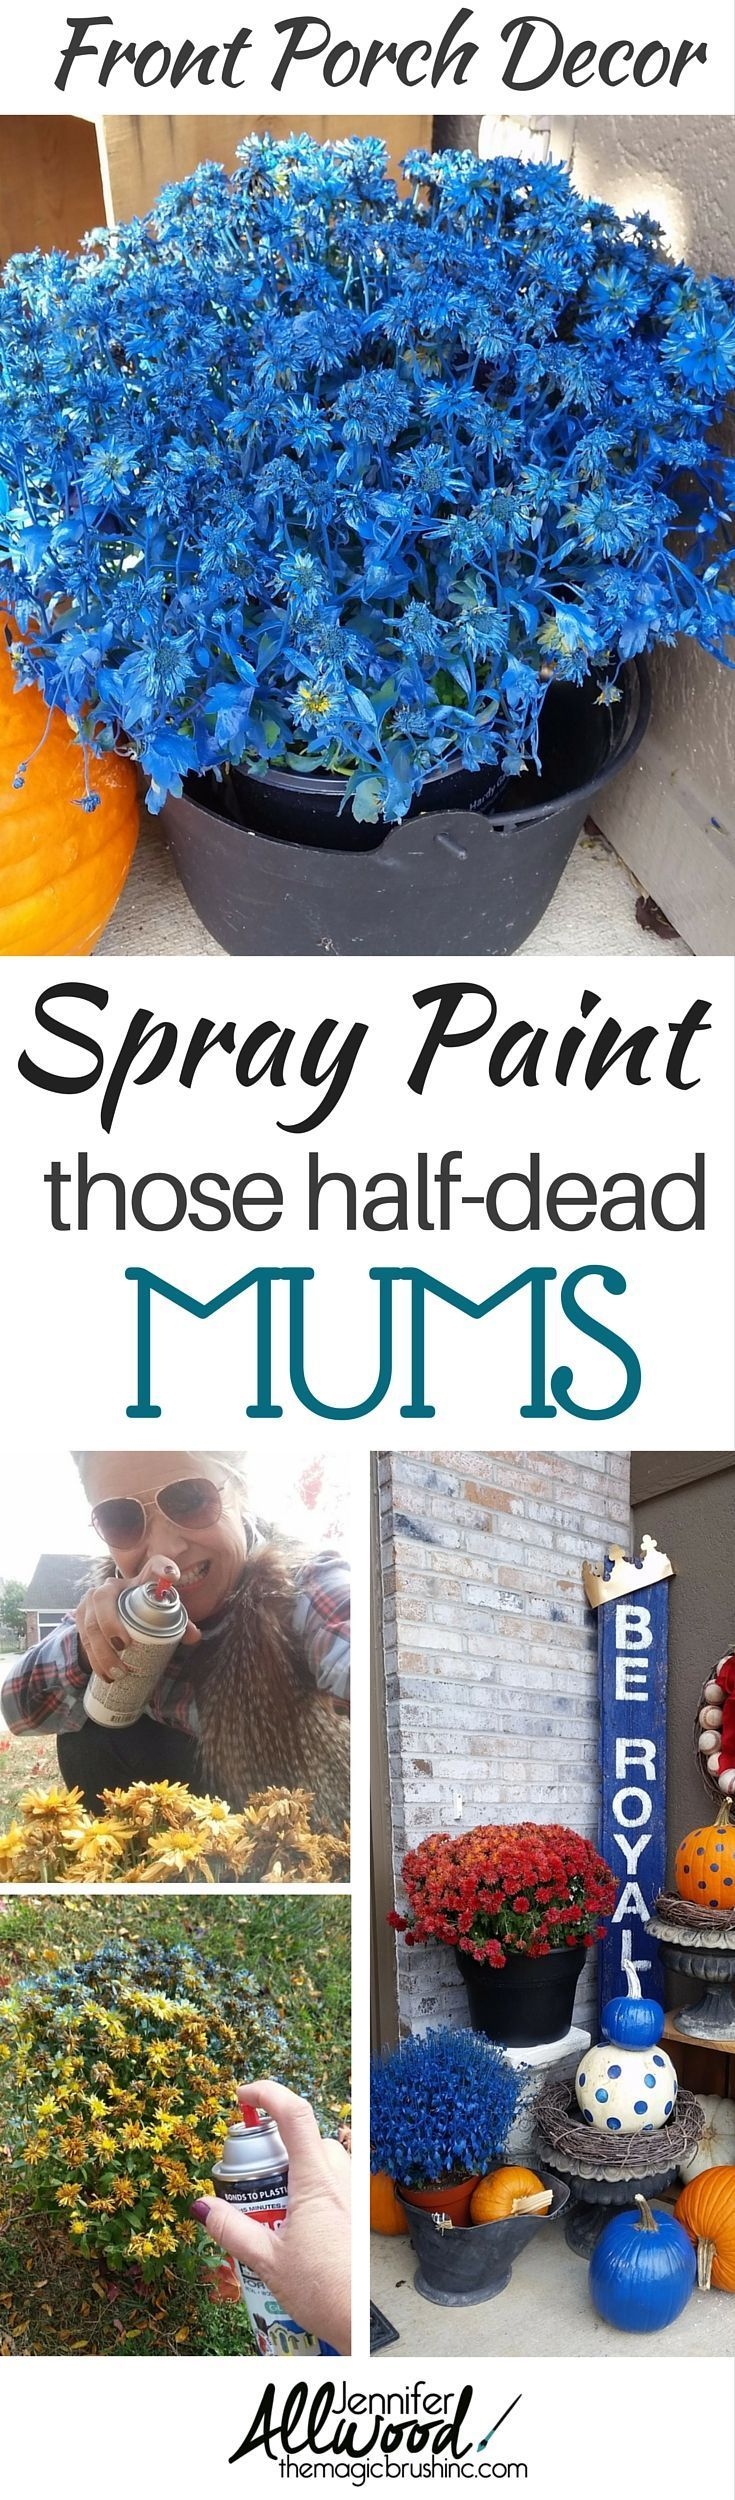 Since those mums are half dying ... why not spray paint them and show your support for your favorite sports team!?! Beautiful baseball front porch decor. Go Royals! Love your biggest fan, theMagicBrushinc.com #diy #howto #diyhomedecor #fall #falldecor #porch #pallet #pumpkin #pumpkinseverywhere